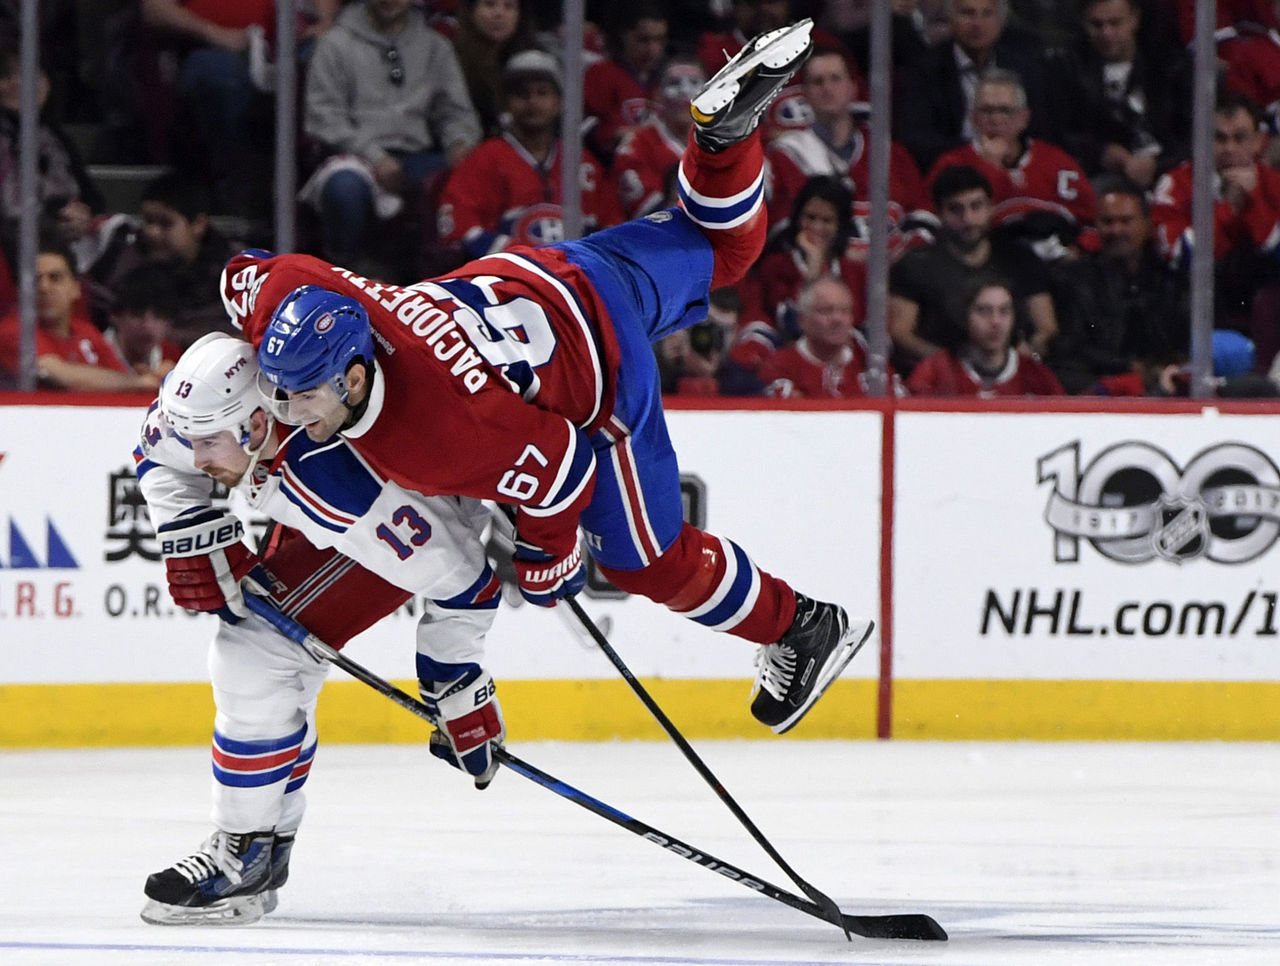 Cropped 2017 04 15t020047z 1992257526 nocid rtrmadp 3 nhl stanley cup playoffs new york rangers at montreal canadiens